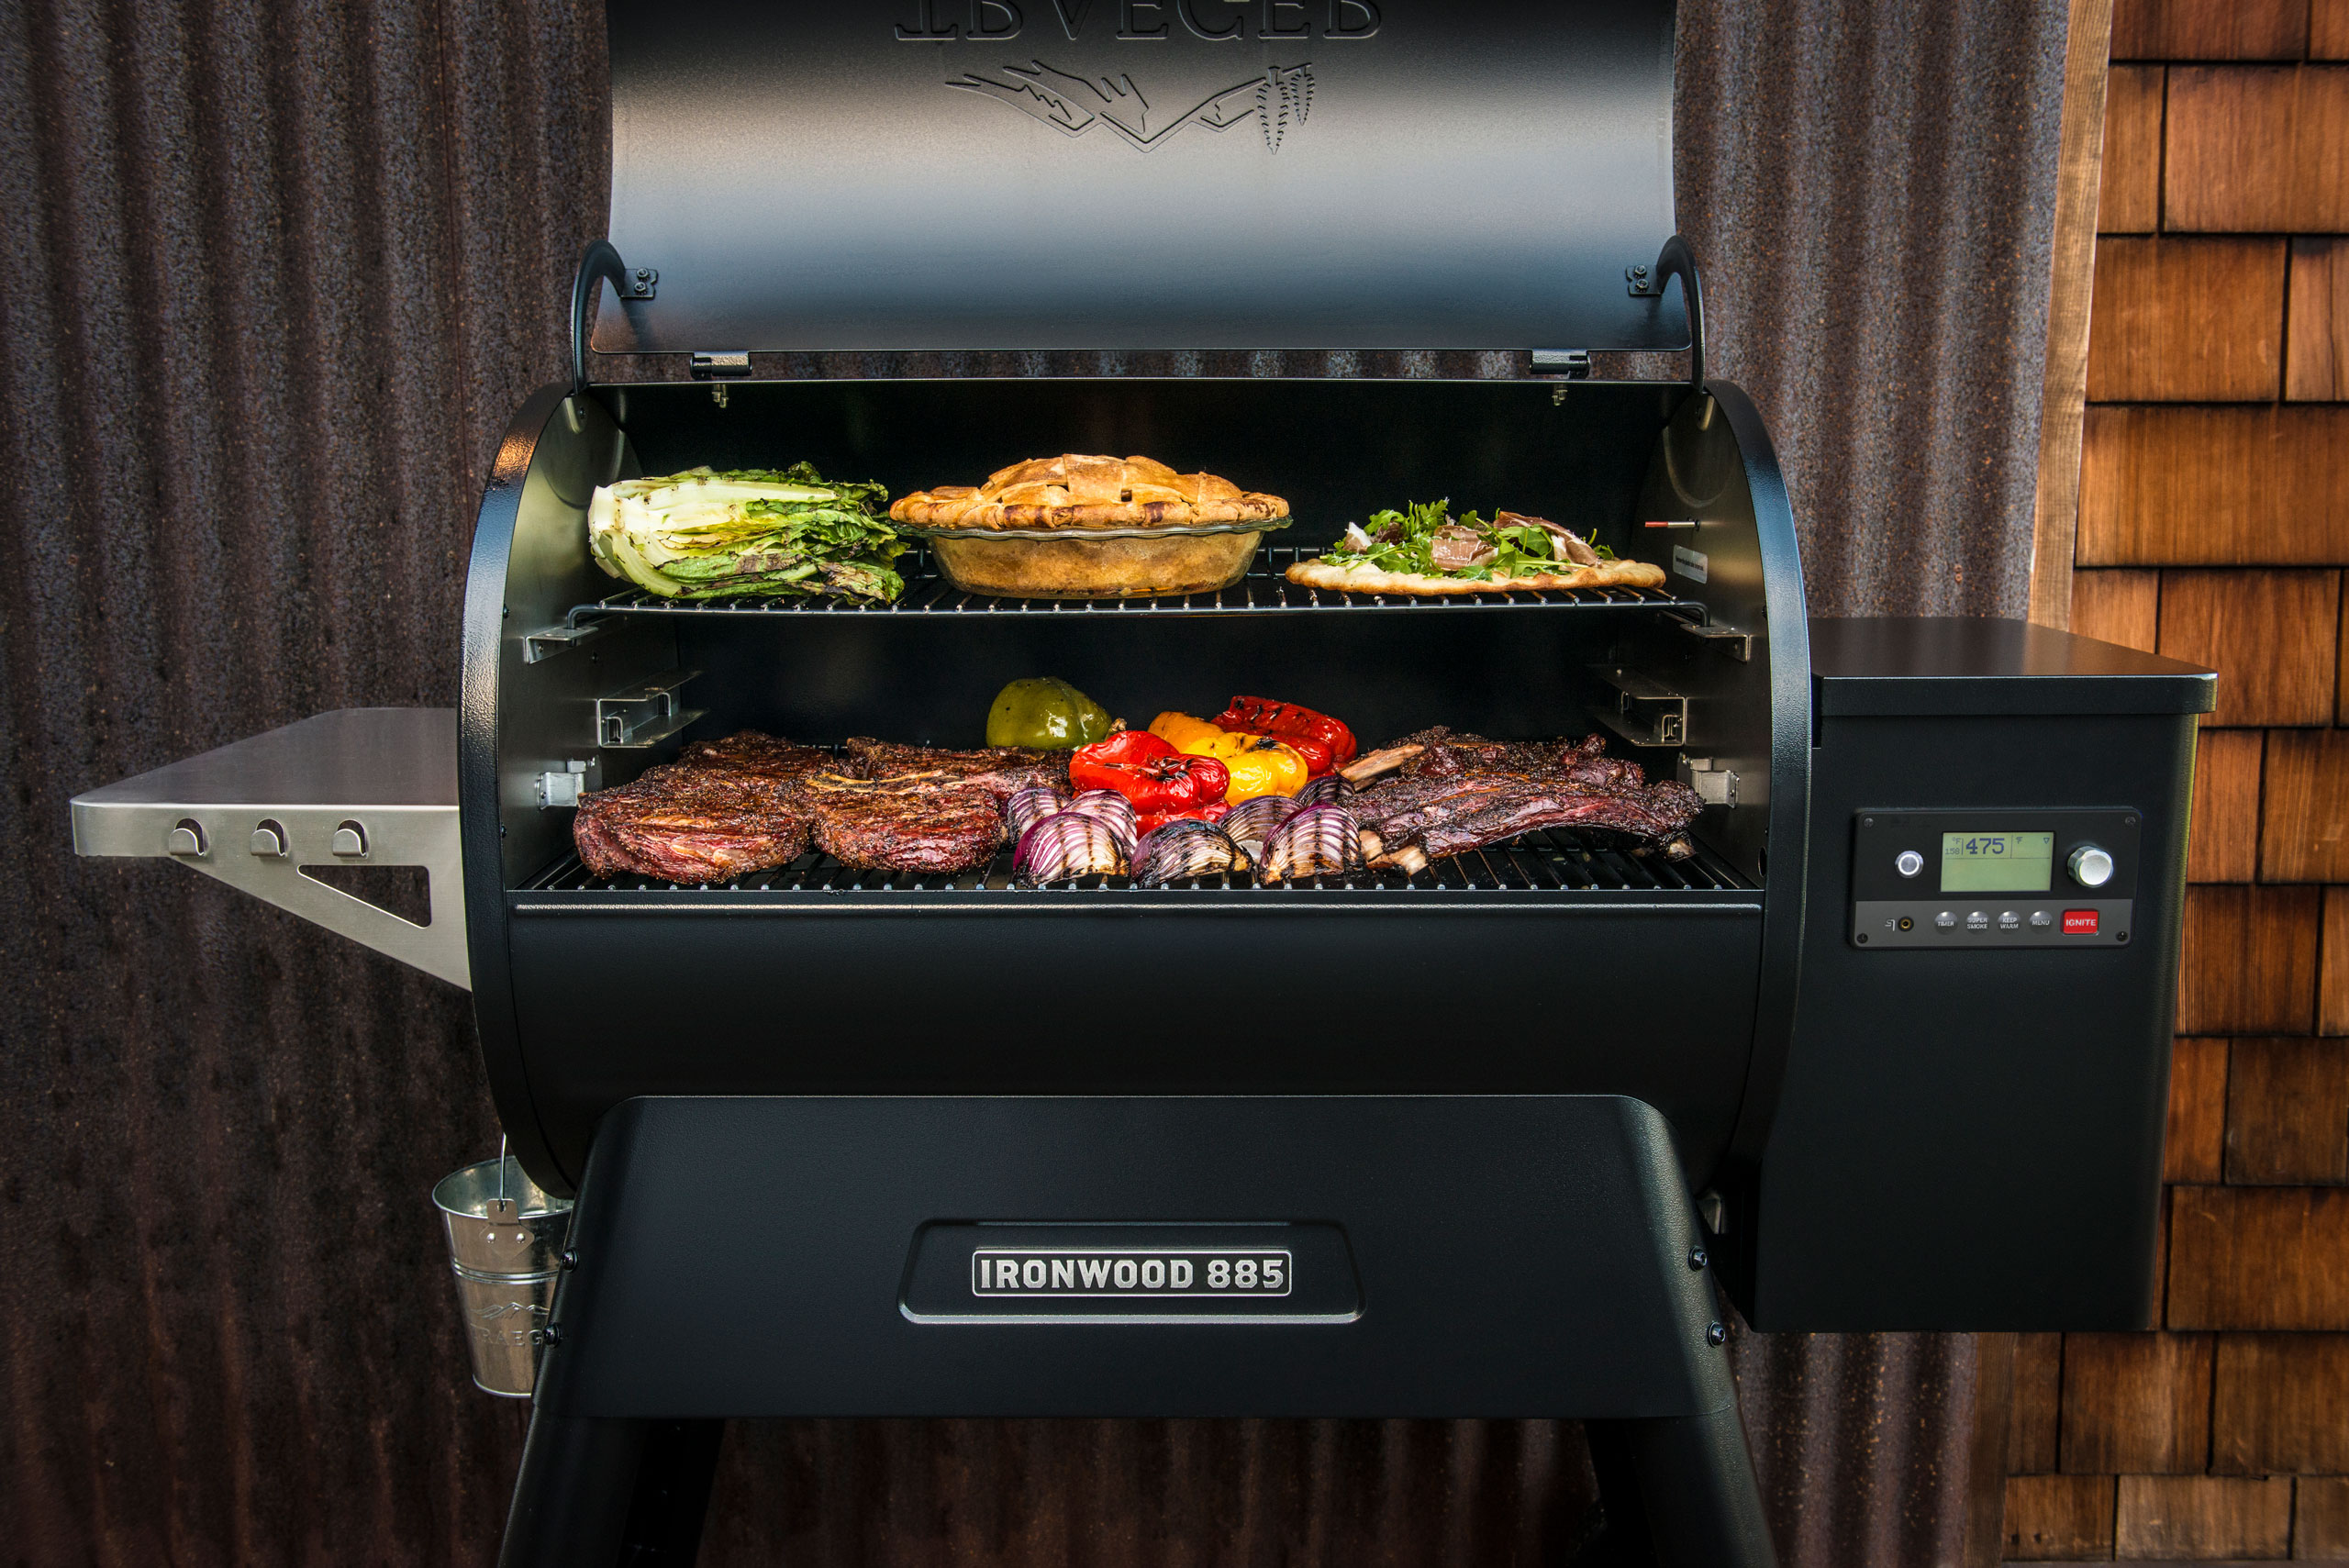 Traeger Ironwood 885 pellet grill with food